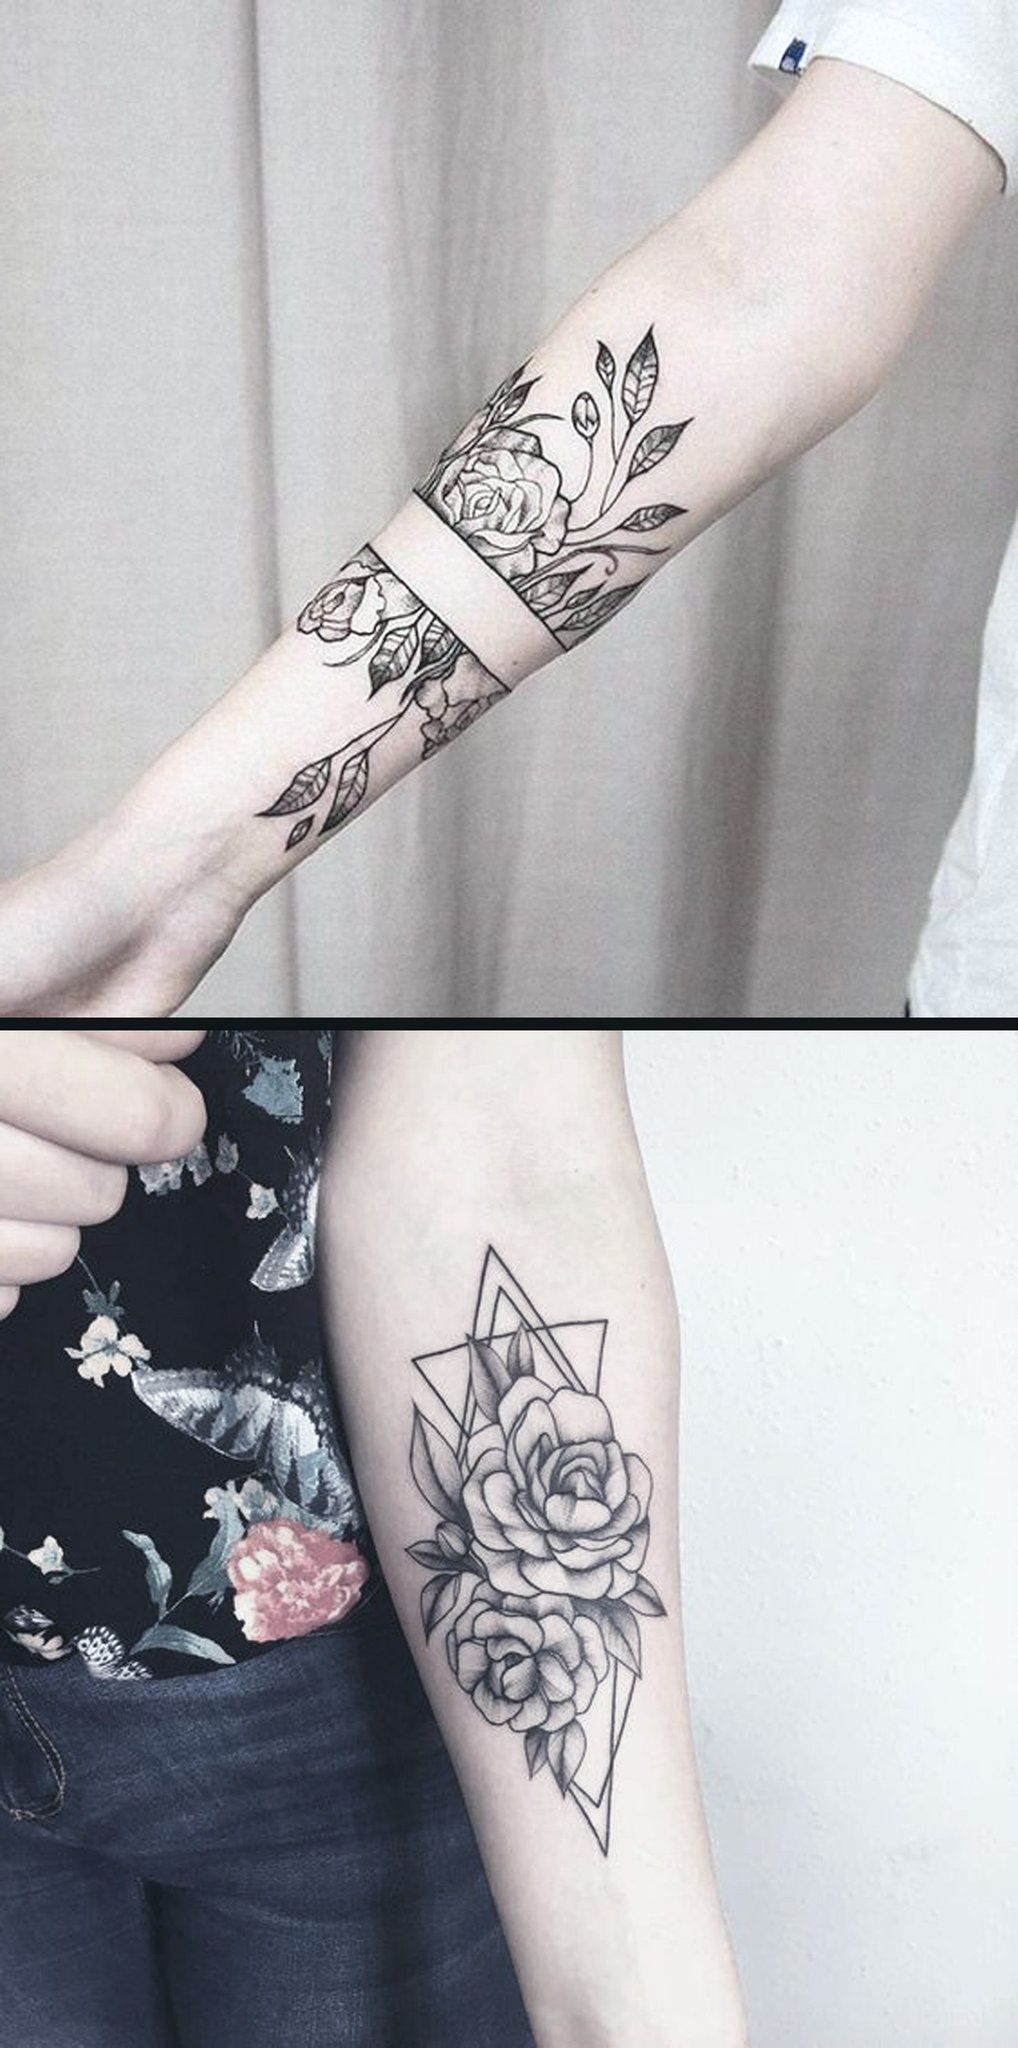 Geometric Diamond Rose Forearm Tattoo Ideas for Women